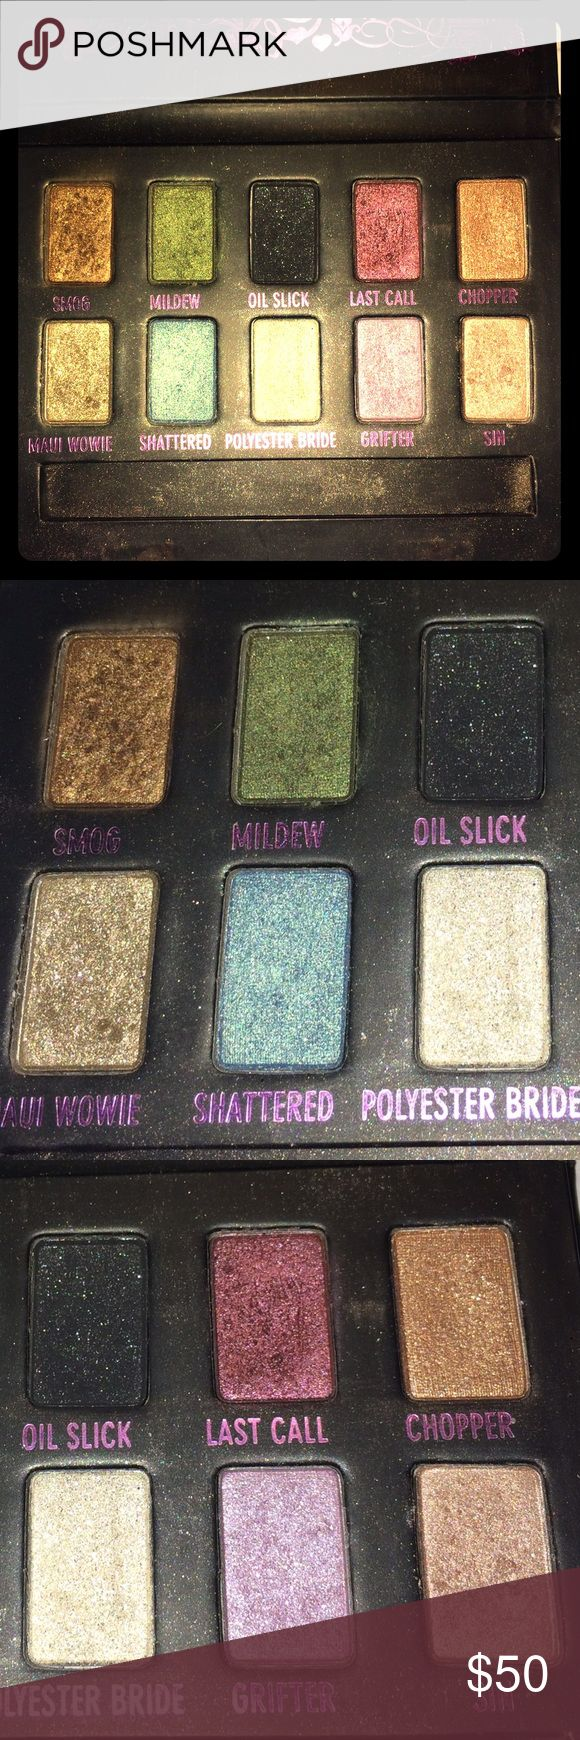 UD AMMO Palette 10 gorgeous glittery eyeshadows. Urban decay ammo palette. Very pigmented and barely used. No brush. Urban Decay Makeup Eyeshadow